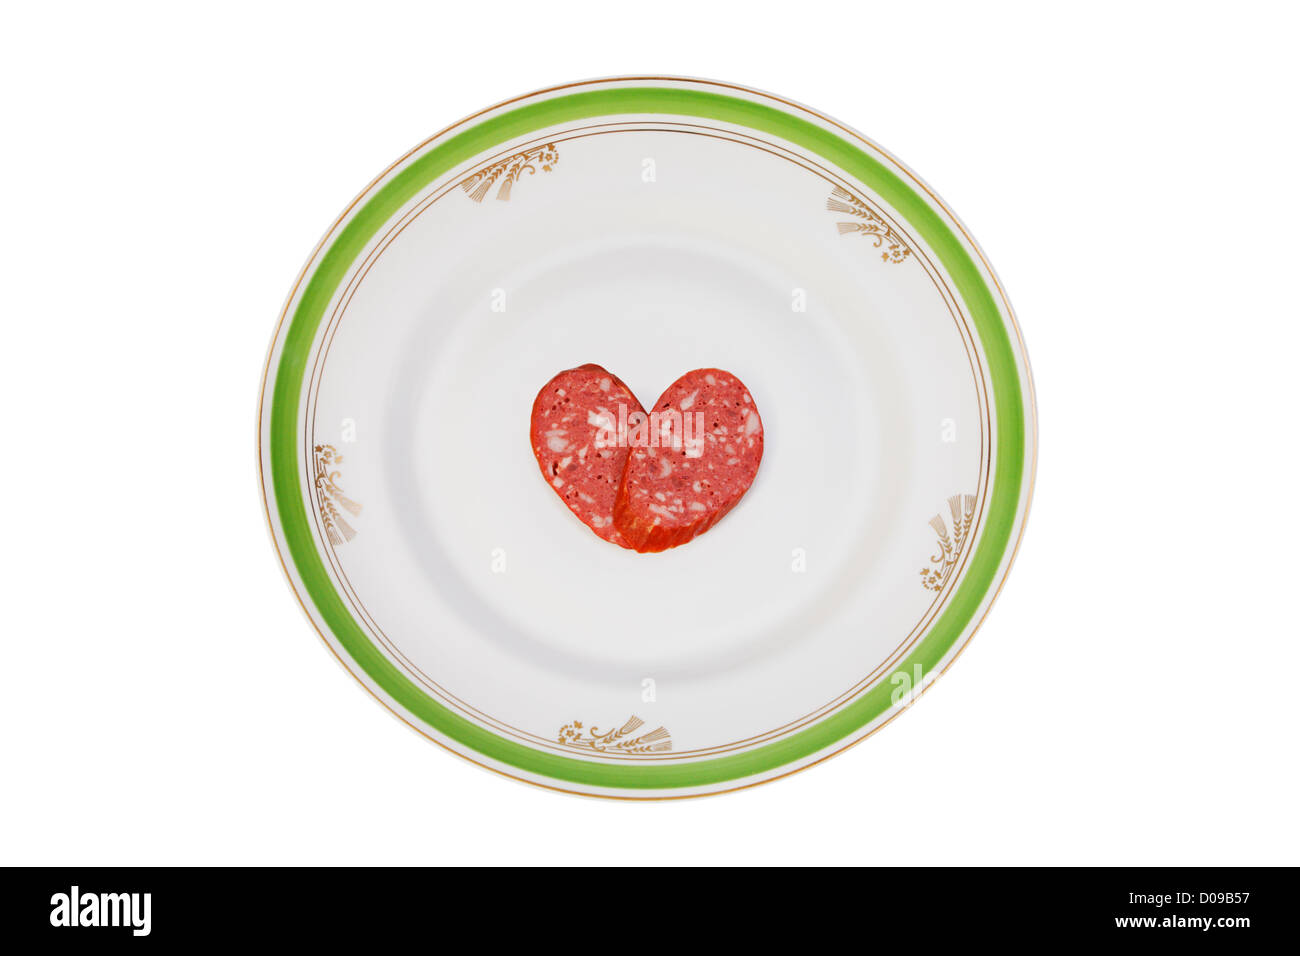 Slices of sausage in the form of a heart on a old dinner plate - Stock Image